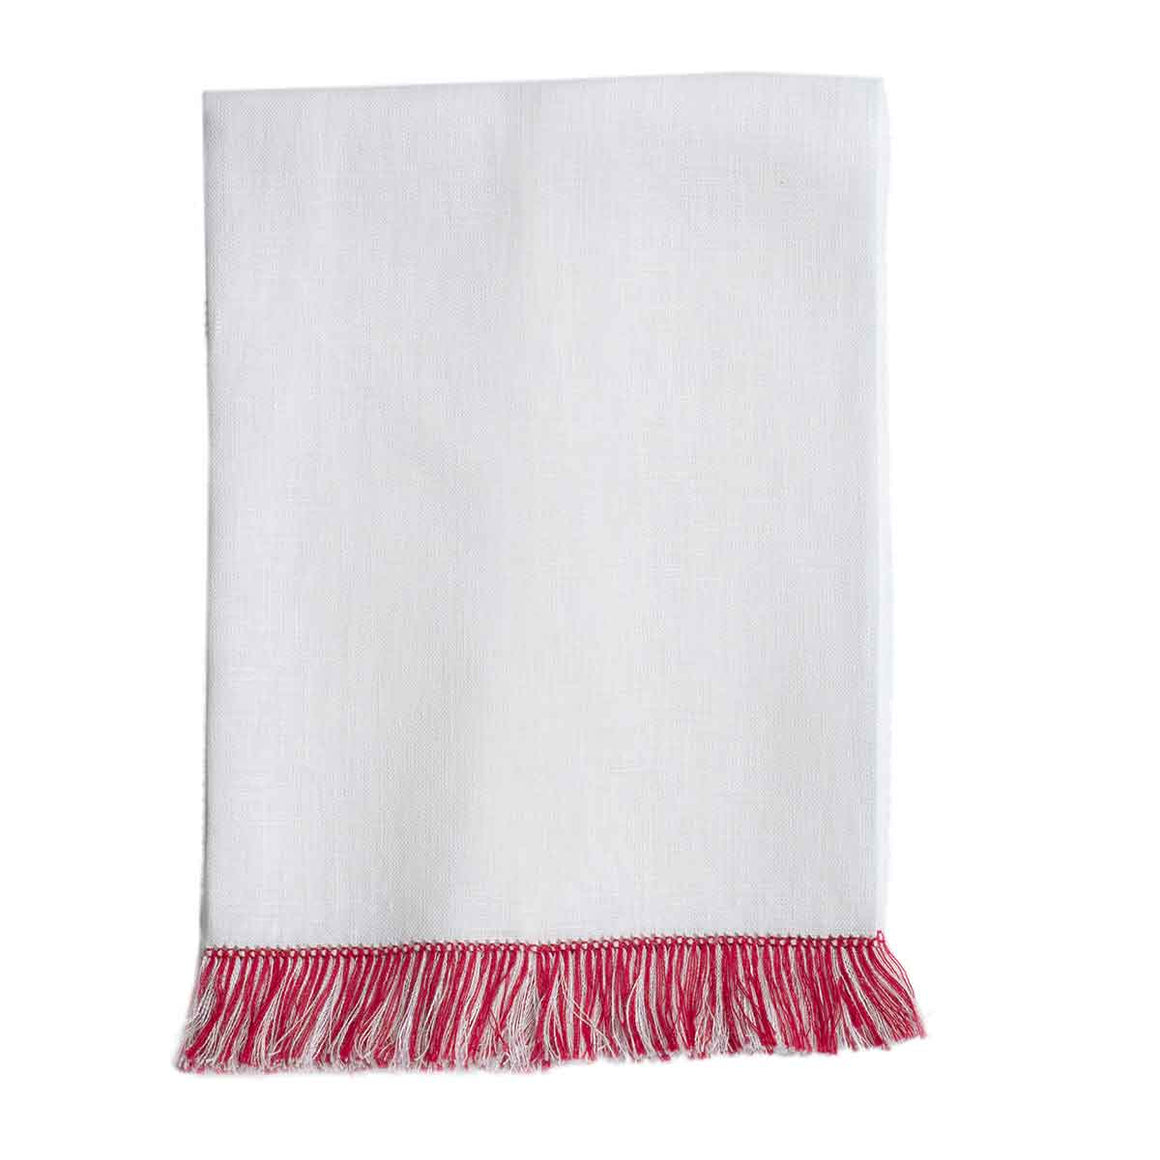 Fringe Benefits Guest Towel | Garden Folly Fine Linens - hand towels for embroidering, fancy linen hand towels, fancy linen guest towels